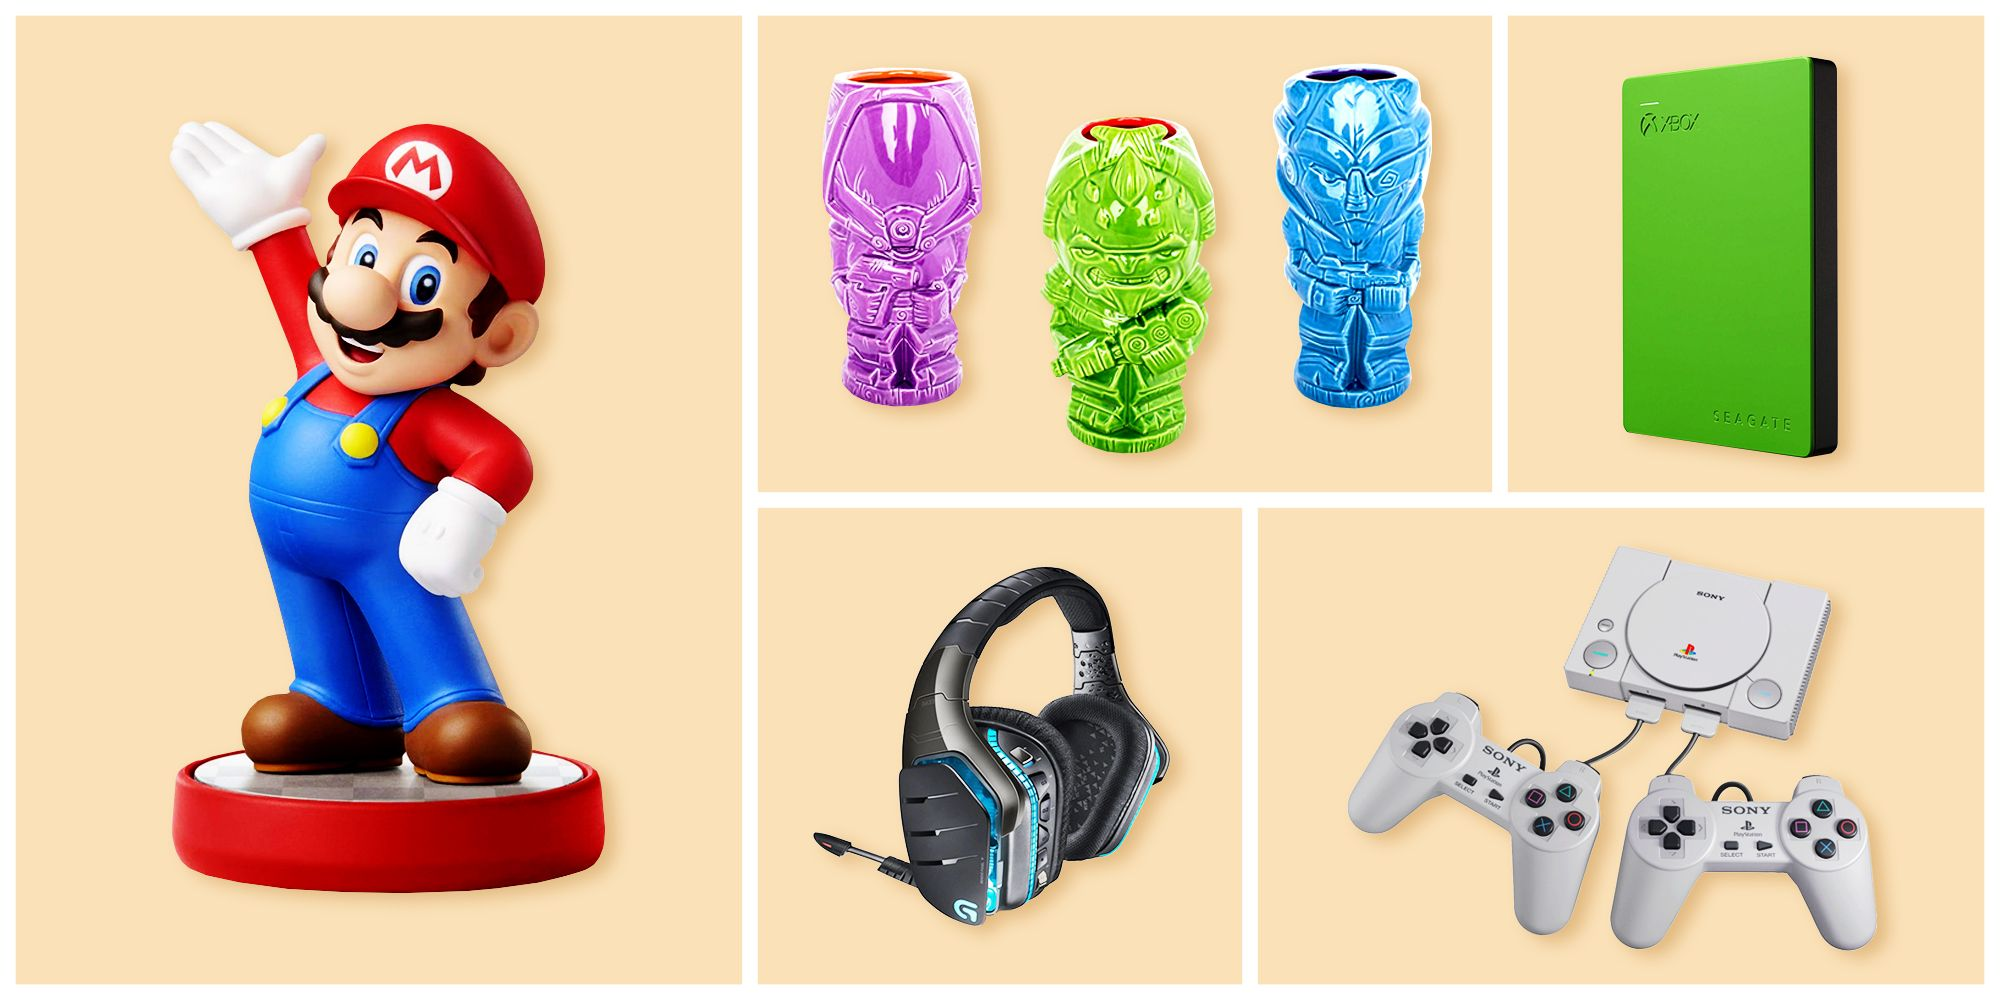 55 Best Gifts for Gamers 2018 - Christmas Gift Ideas for Video Game